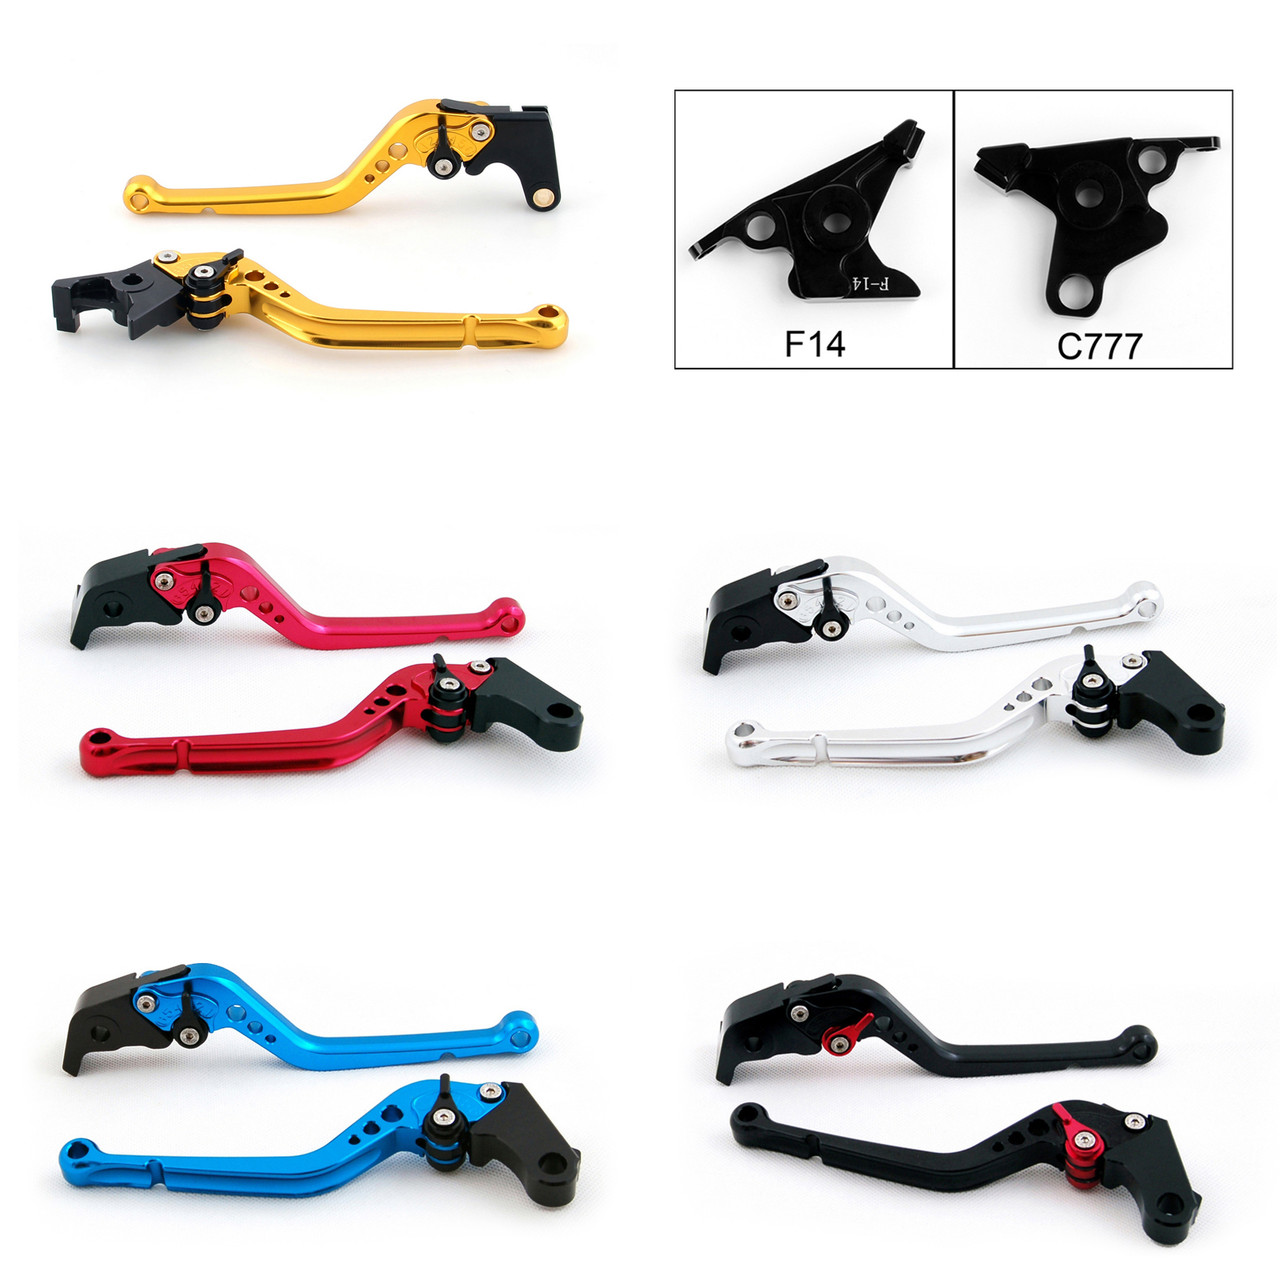 Standard Staff Length Adjustable Brake Clutch Levers Buell 1125R 2008-2009 (F-14/C-777)